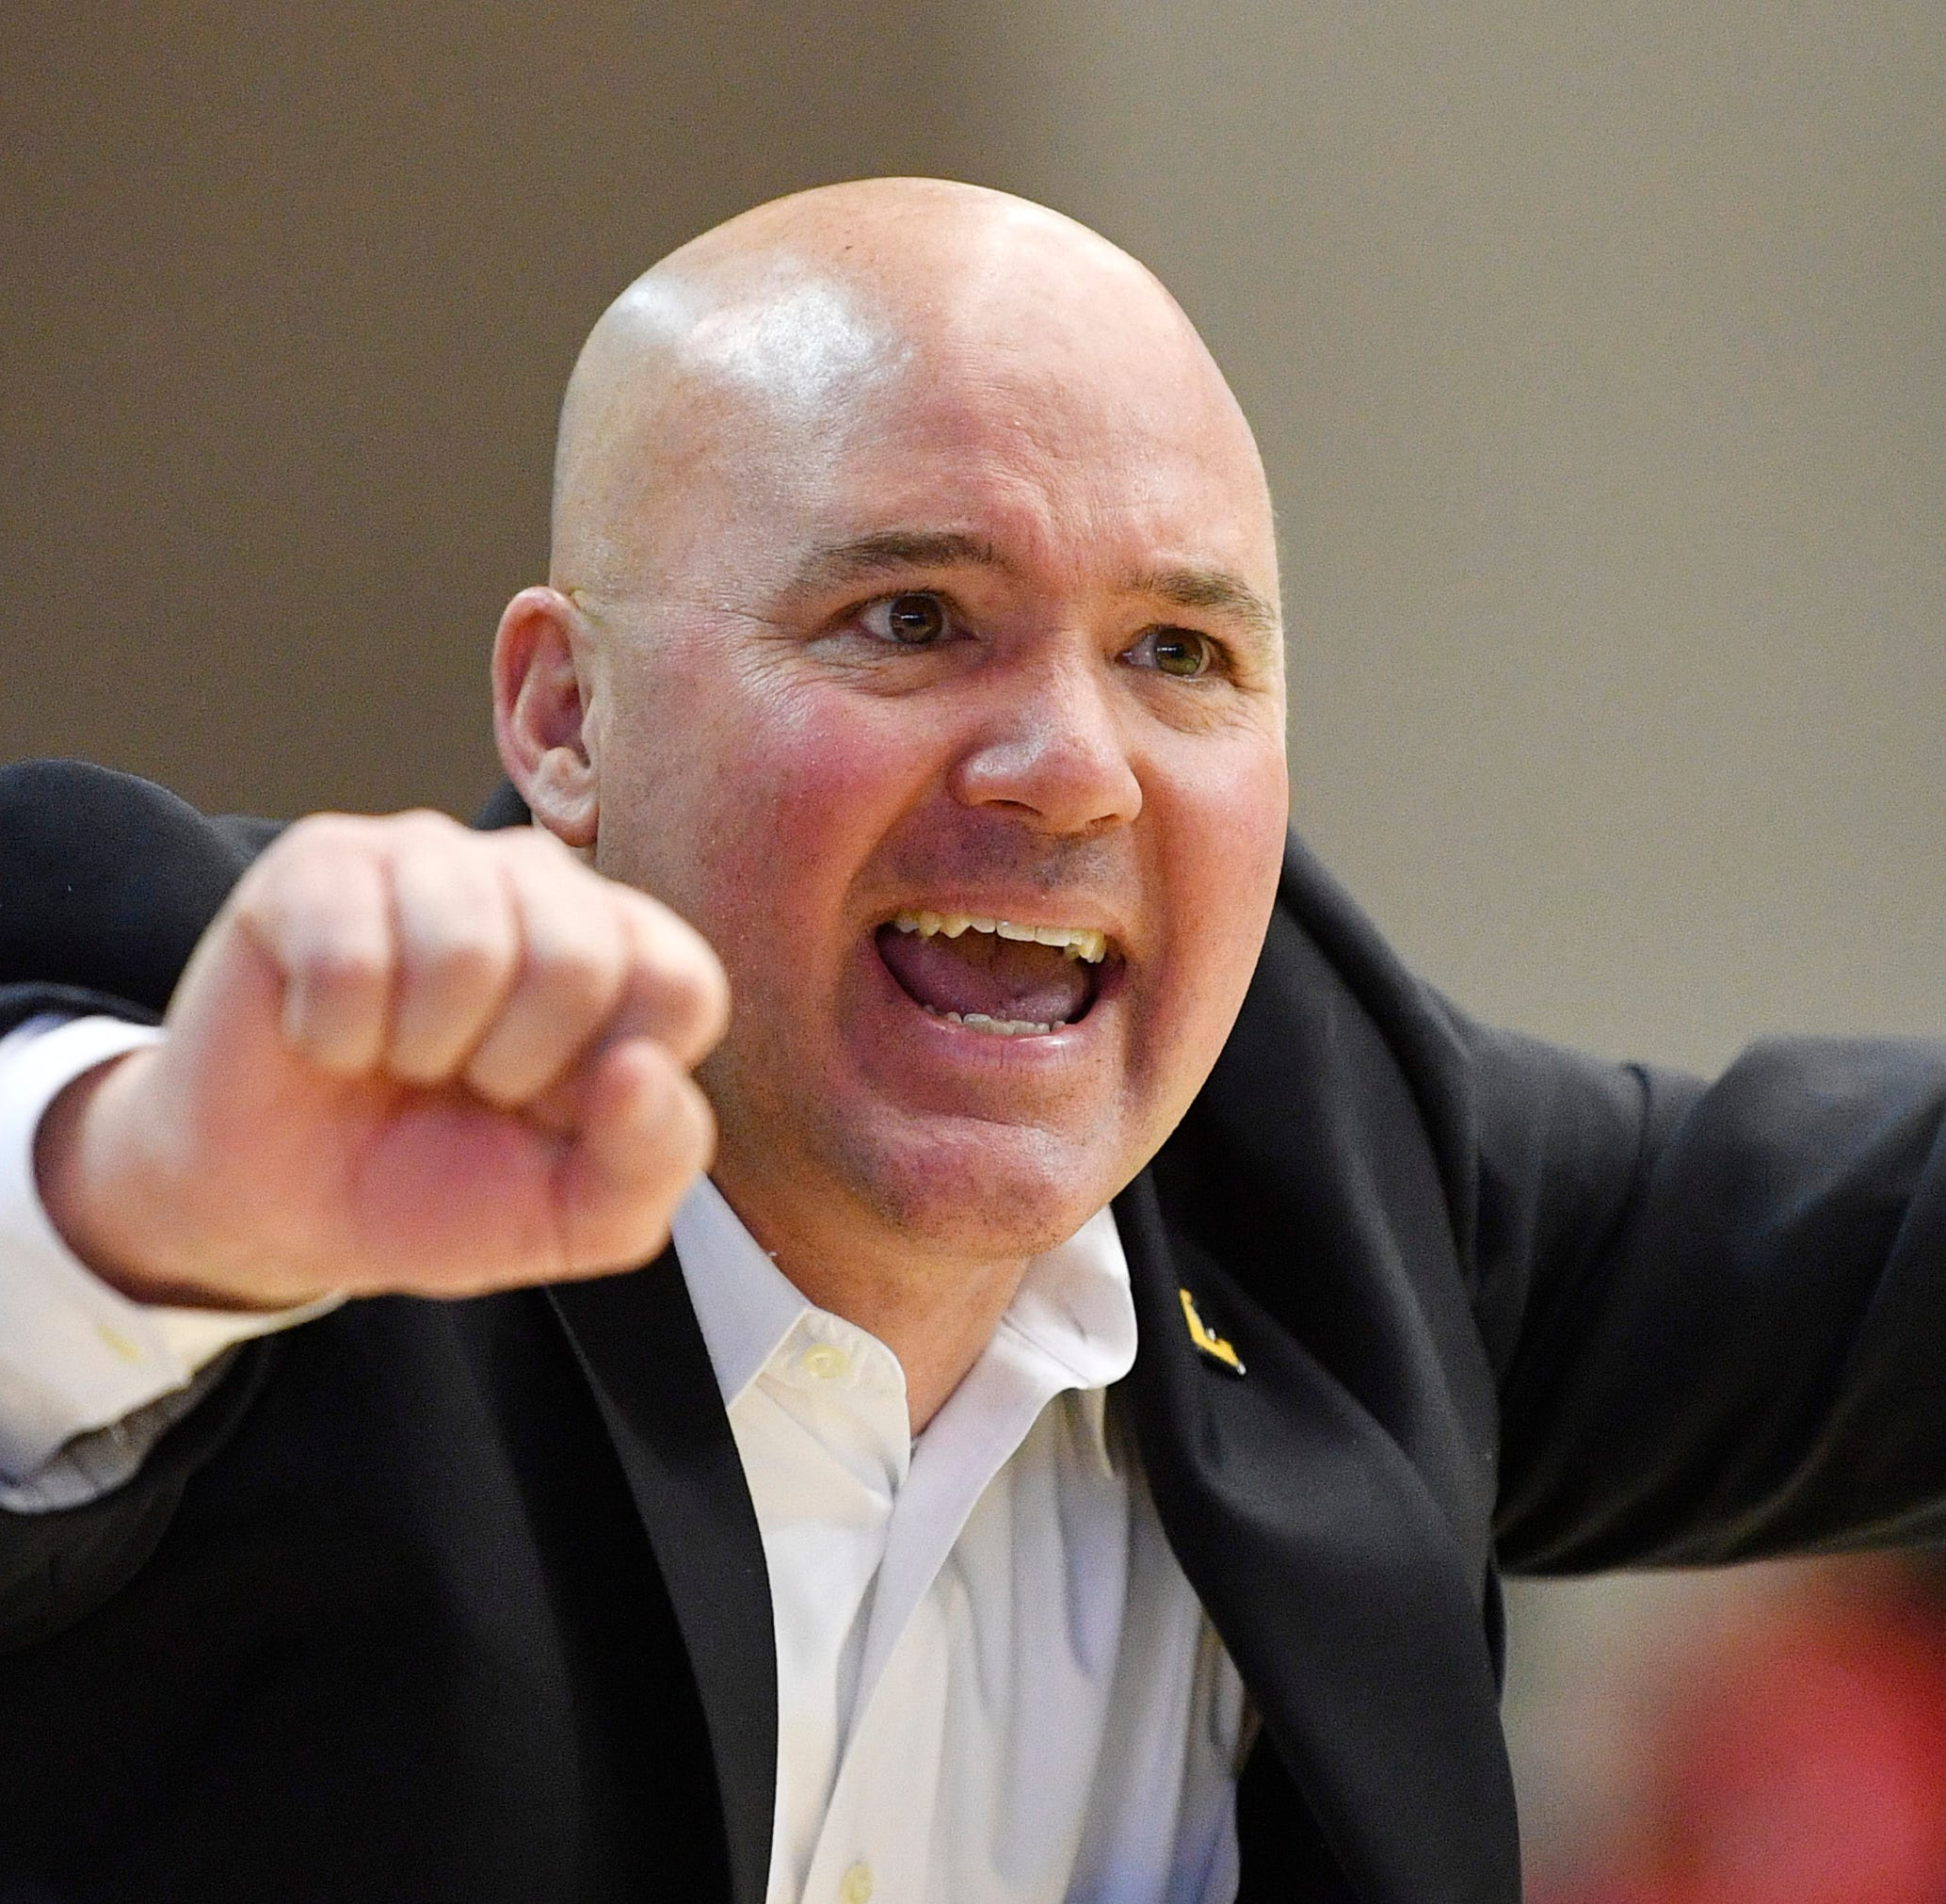 Lipscomb Coach Casey Alexander gives instructions to his team as Lipscomb plays Liberty in the championship of the Atlantic Sun Conference Tournament at Allen Arena Sunday, March 10, 2019, in Nashville, Tenn.